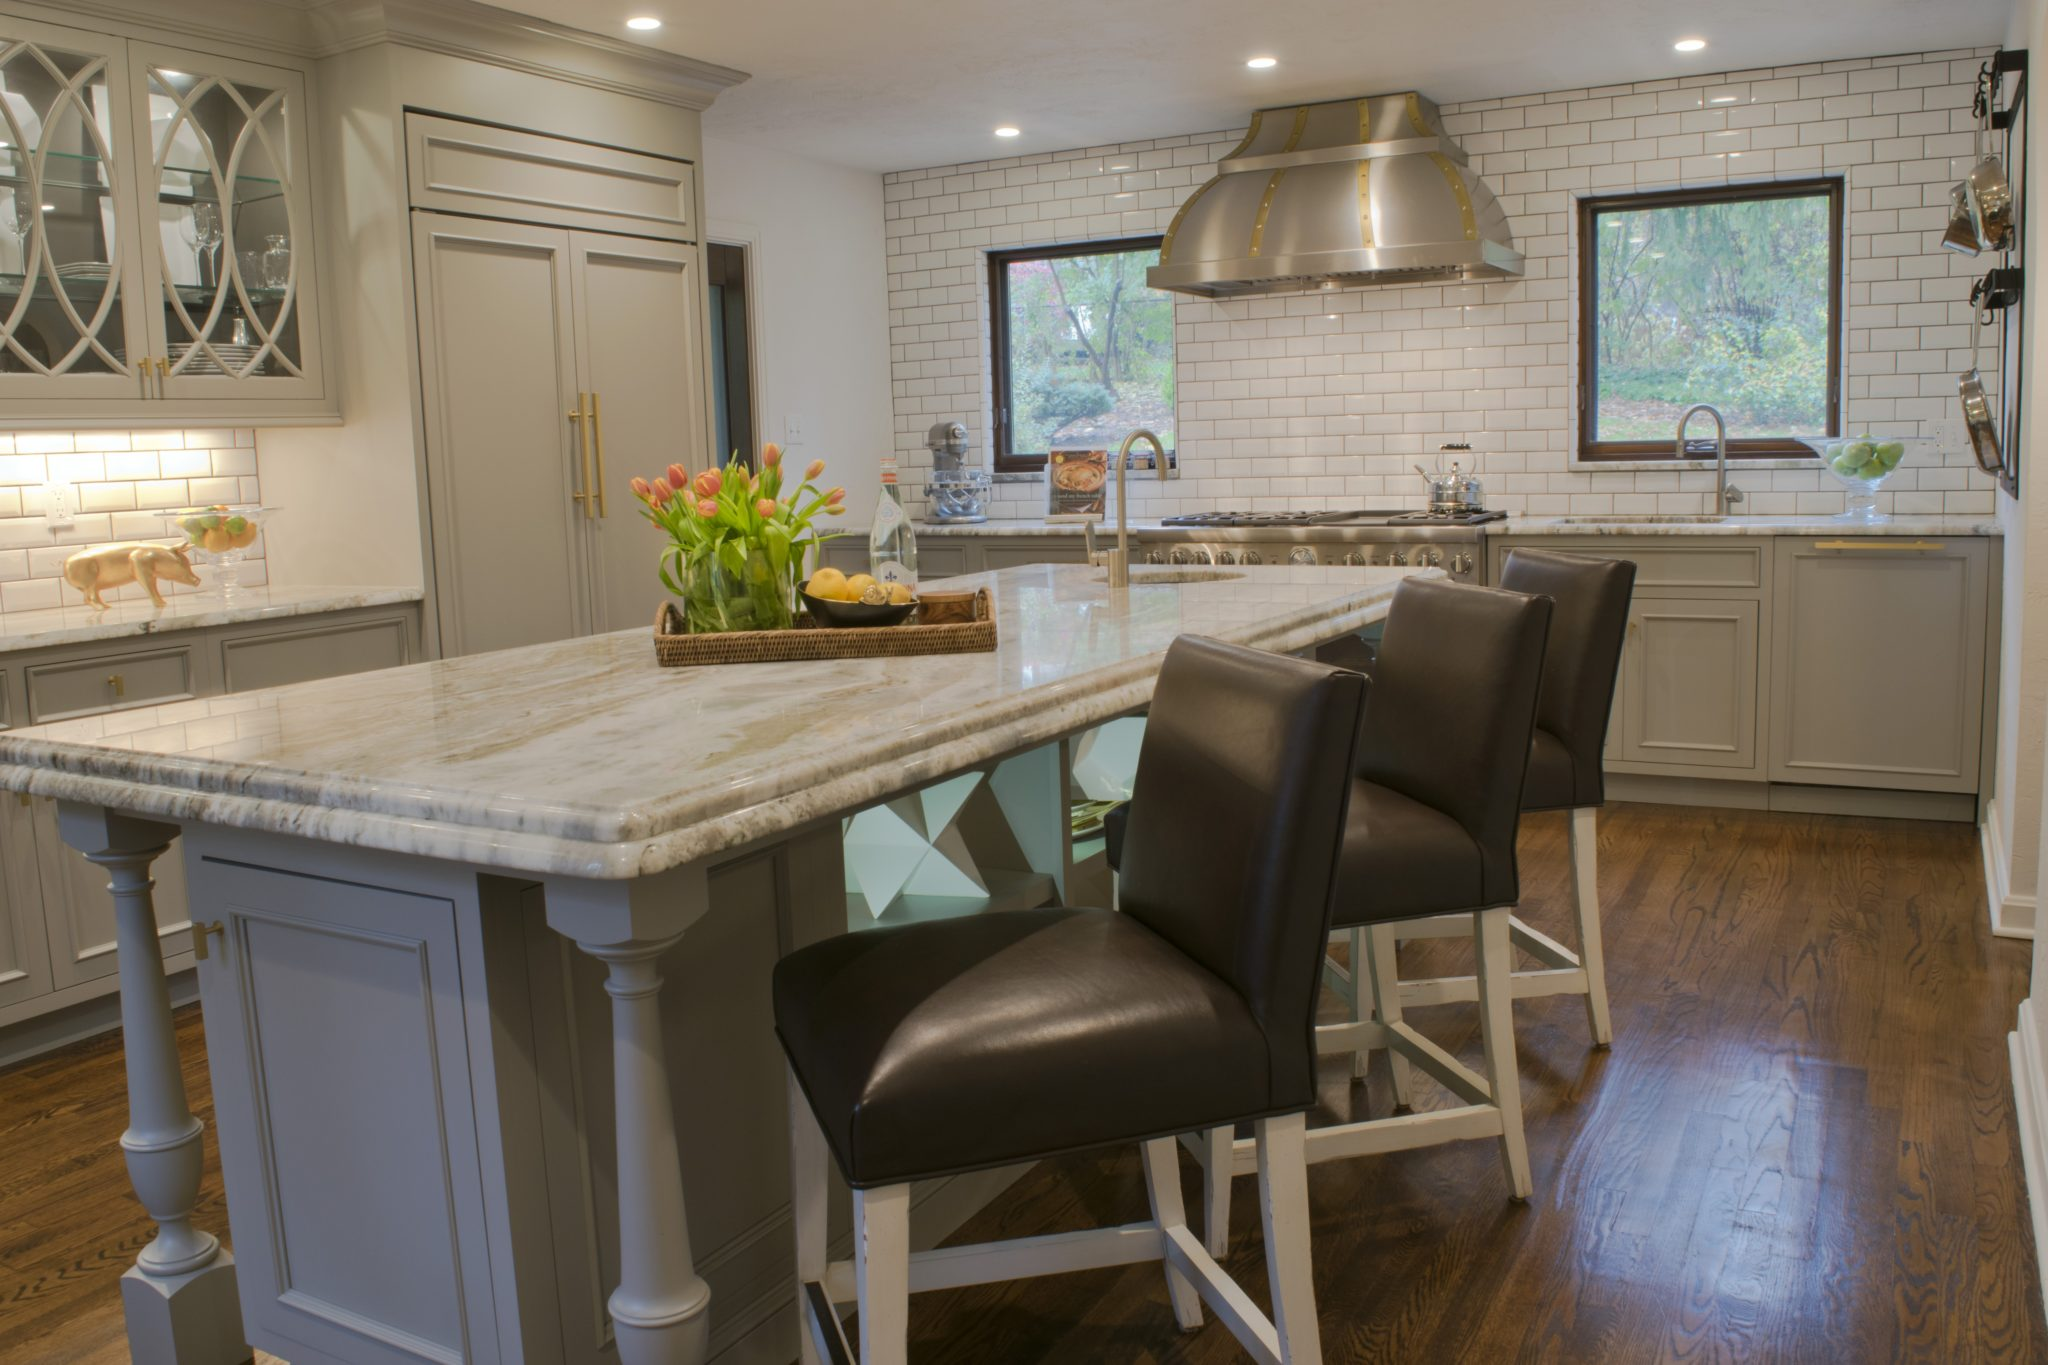 English Tudor kitchen renovation - large island fits six counter stools. By LSM Interior Design